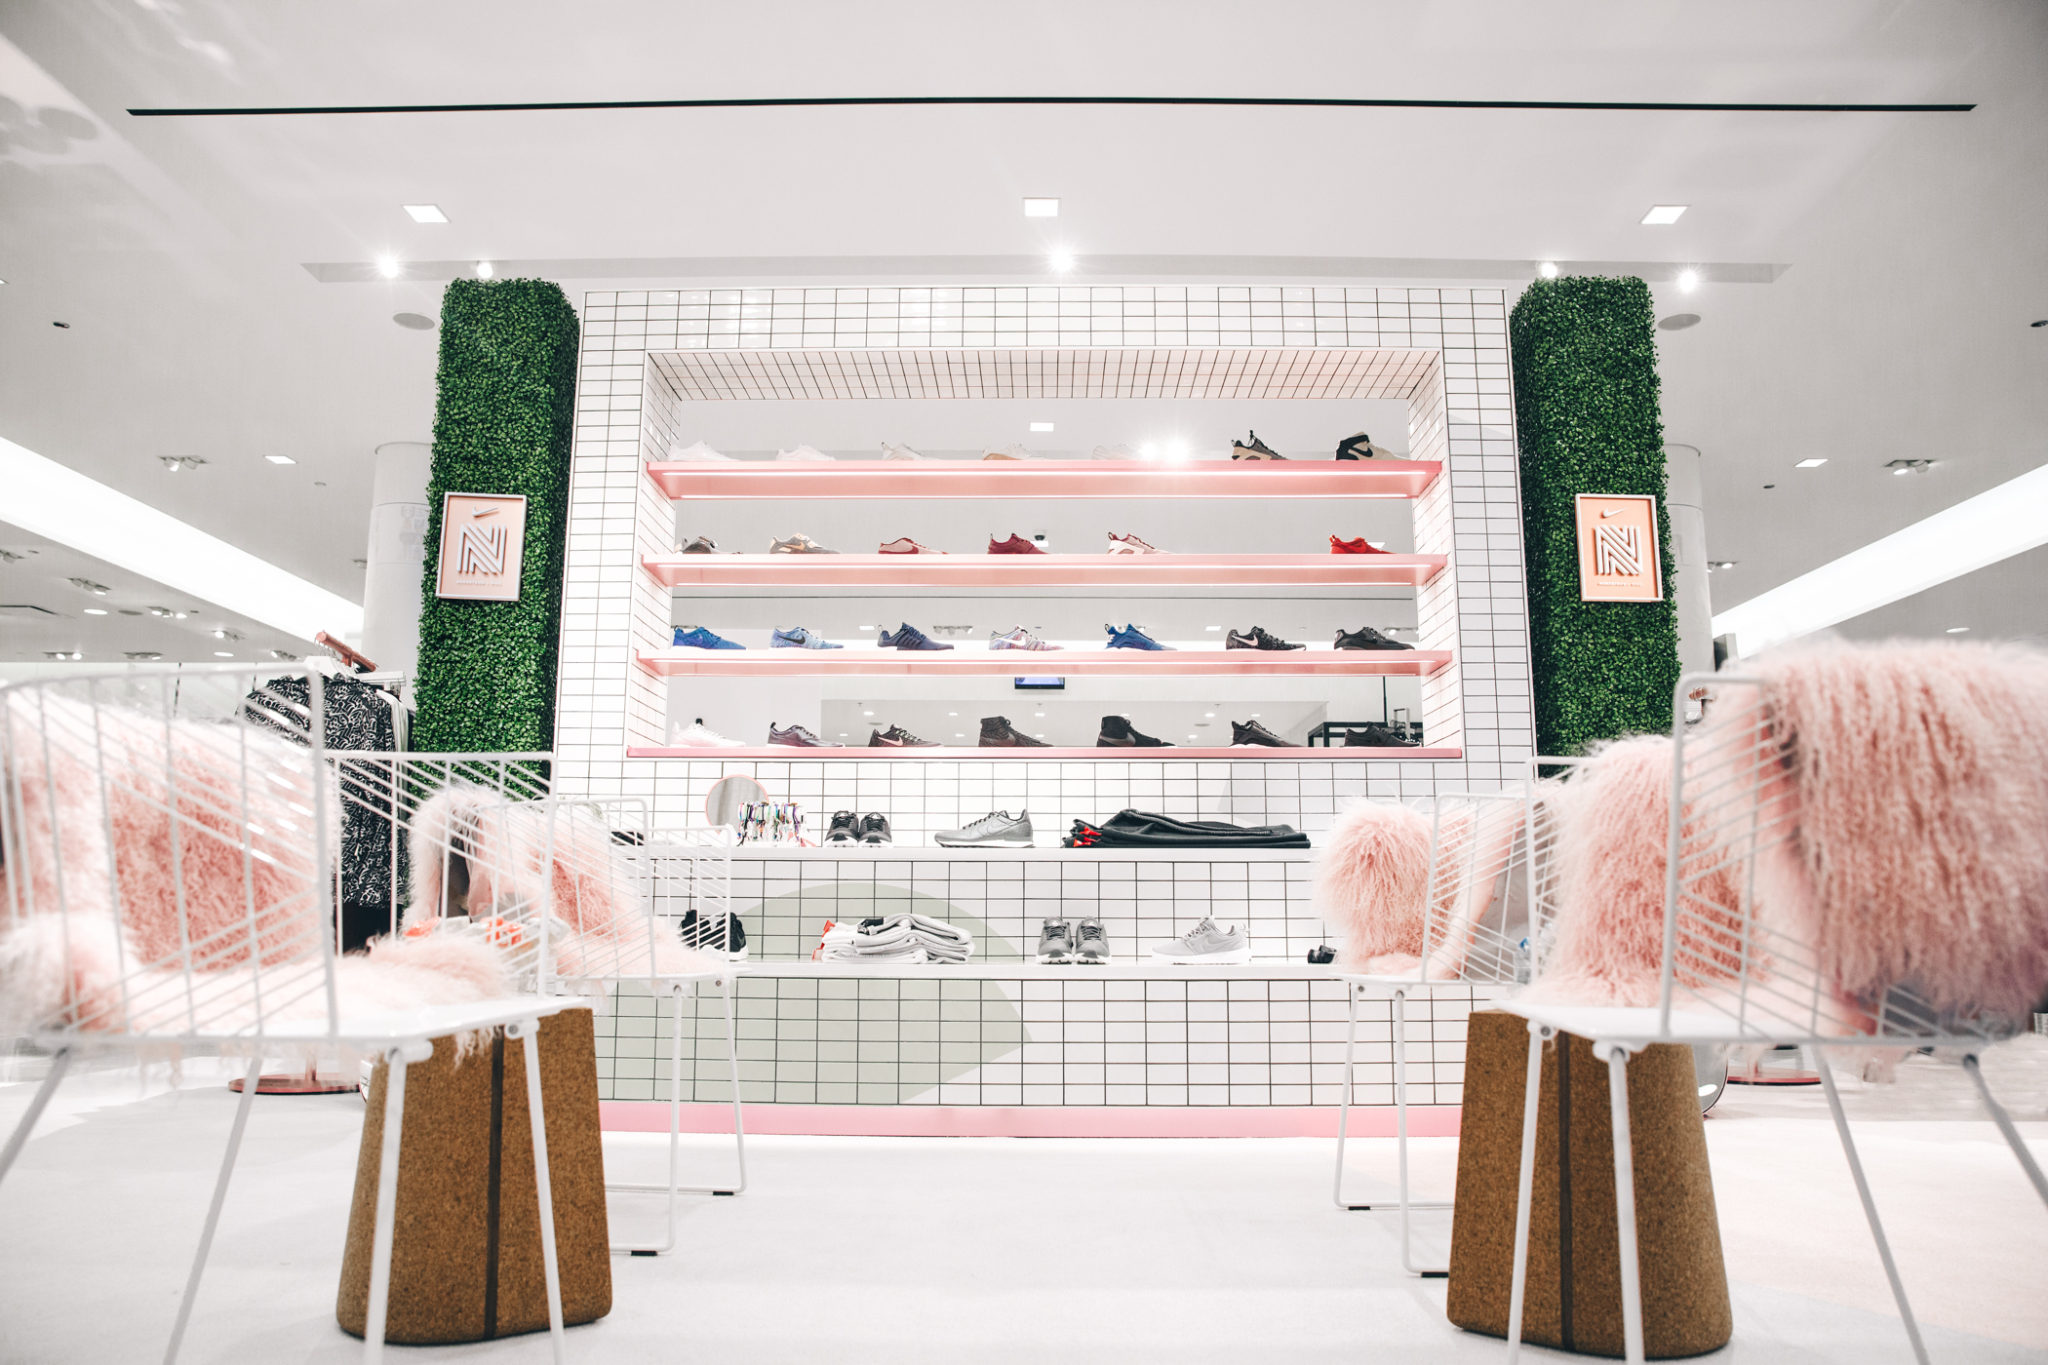 Nordstrom x Nike Sneaker Boutique Opens This Weekend